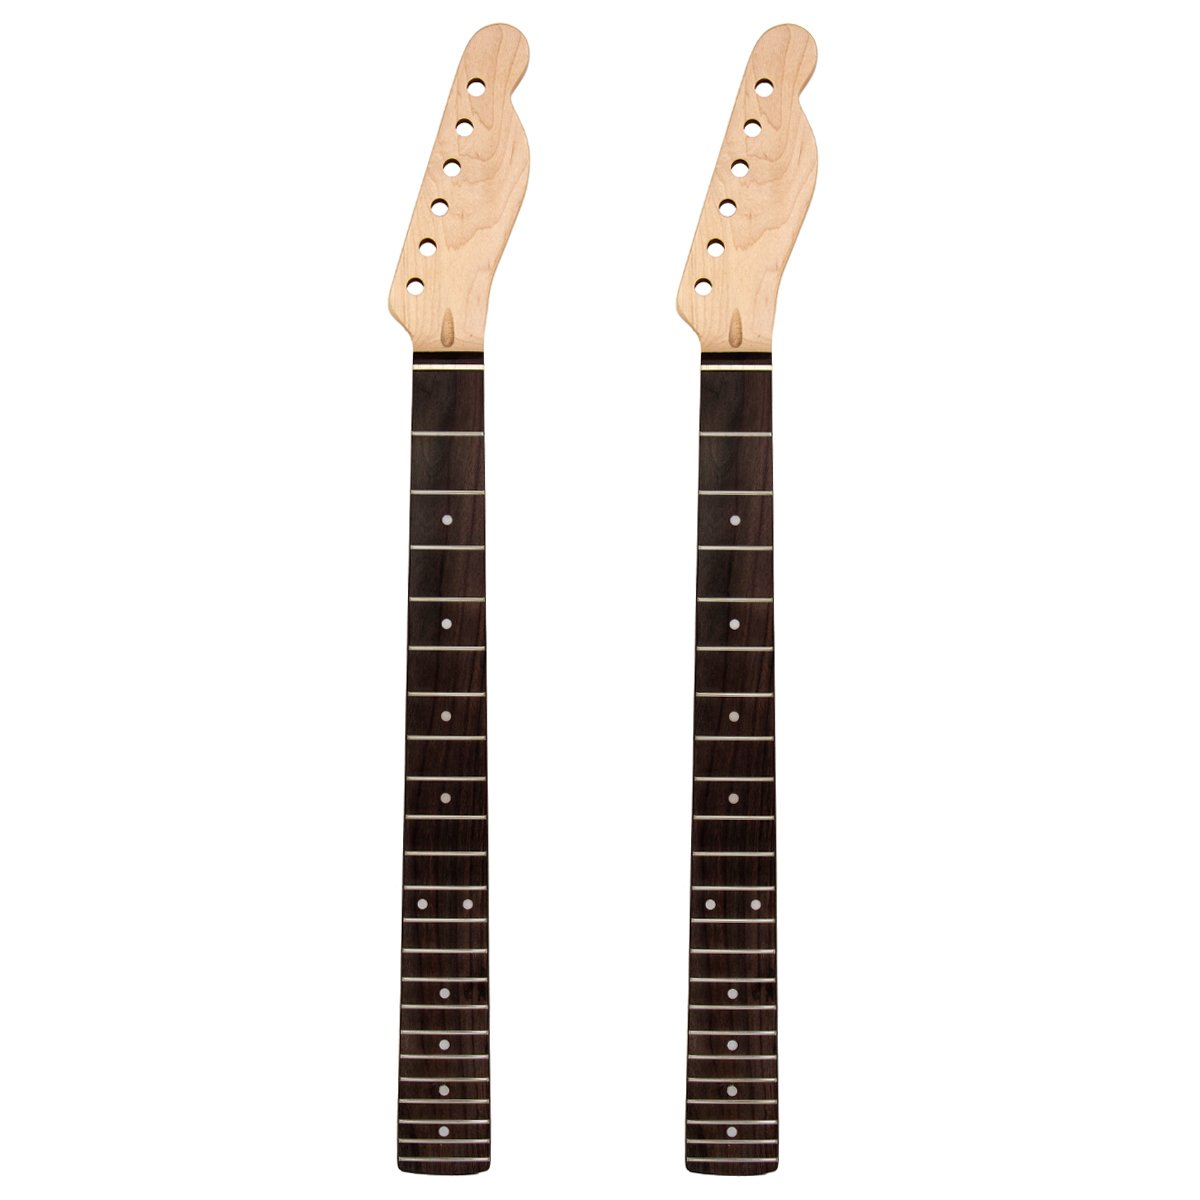 2pcs Guitar Neck 22 Frets Maple Rosewod Inlay Back For Luthier Guitar Diy